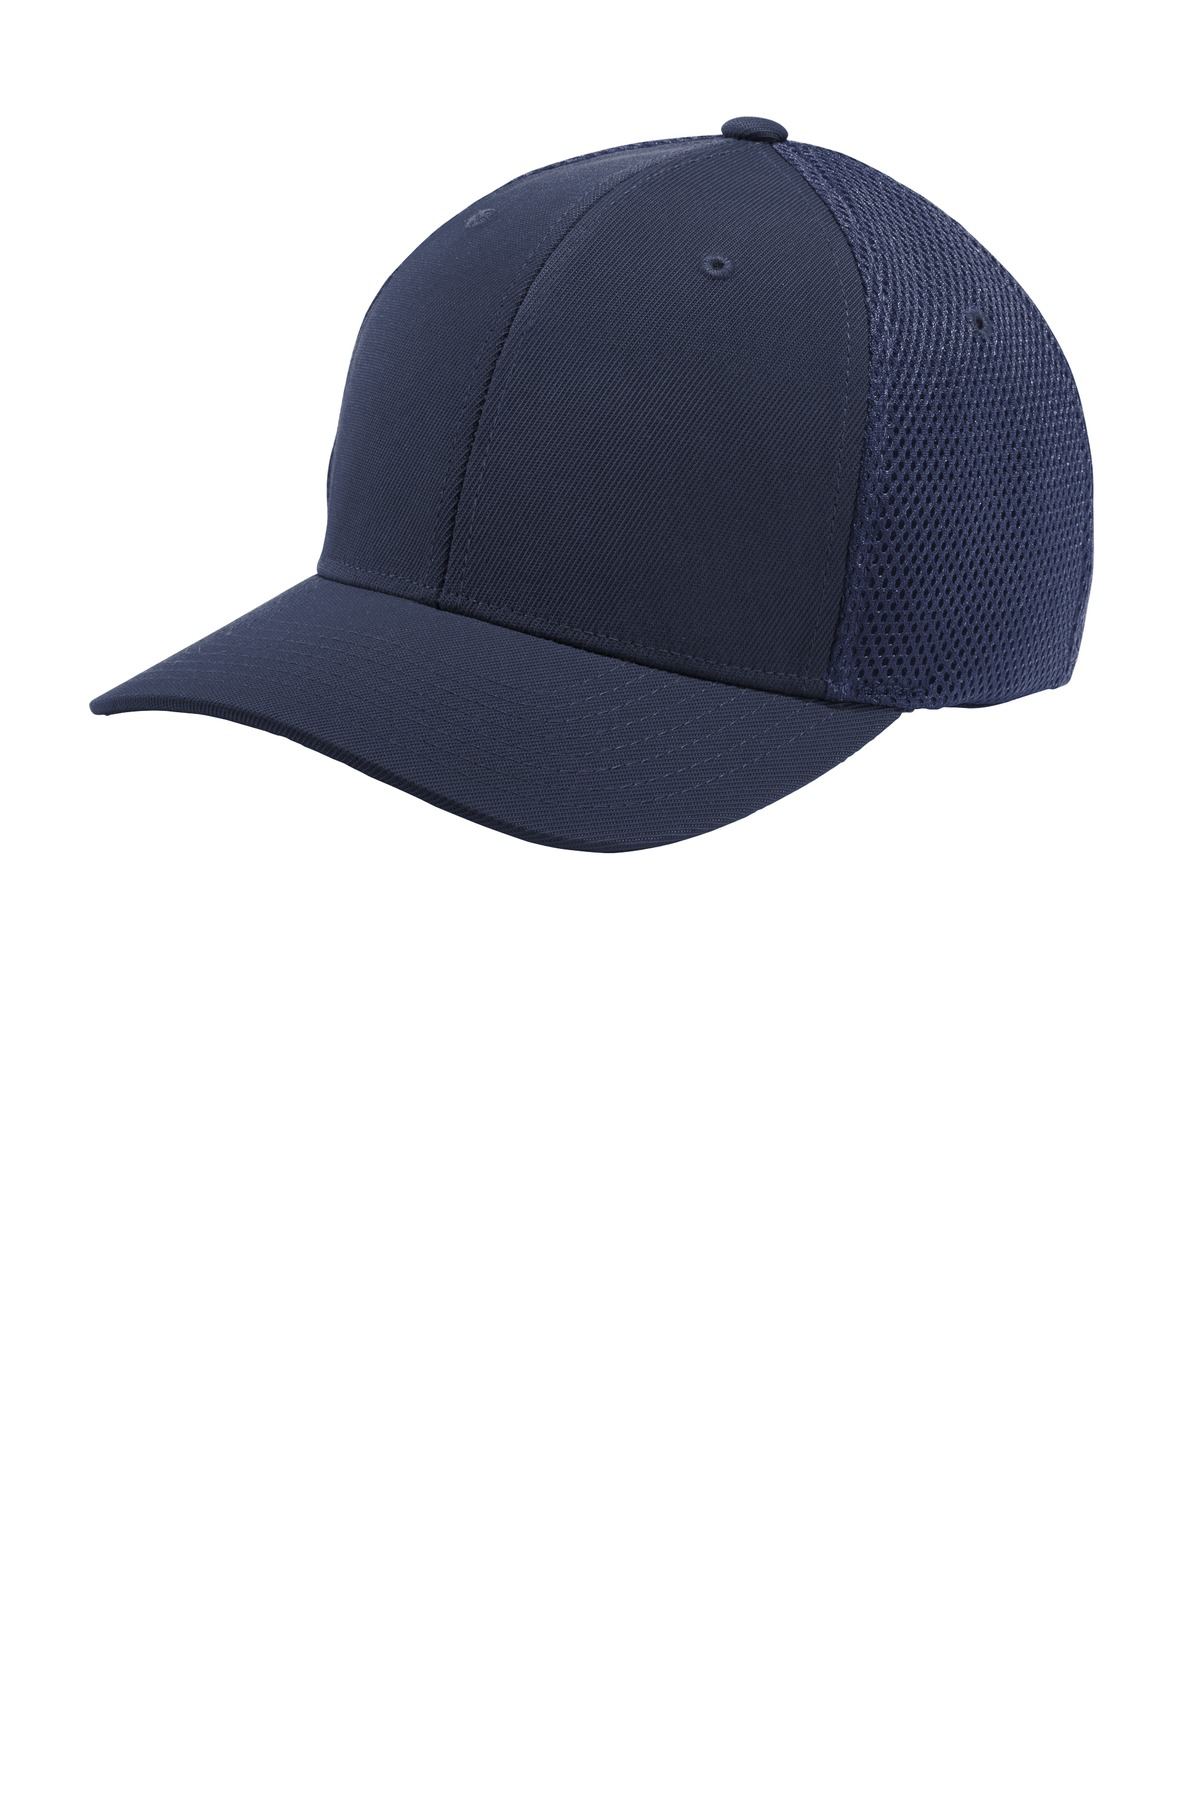 Sport-Tek  ®  Flexfit  ®  Air Mesh Back Cap. STC40 - True Navy/ True Navy